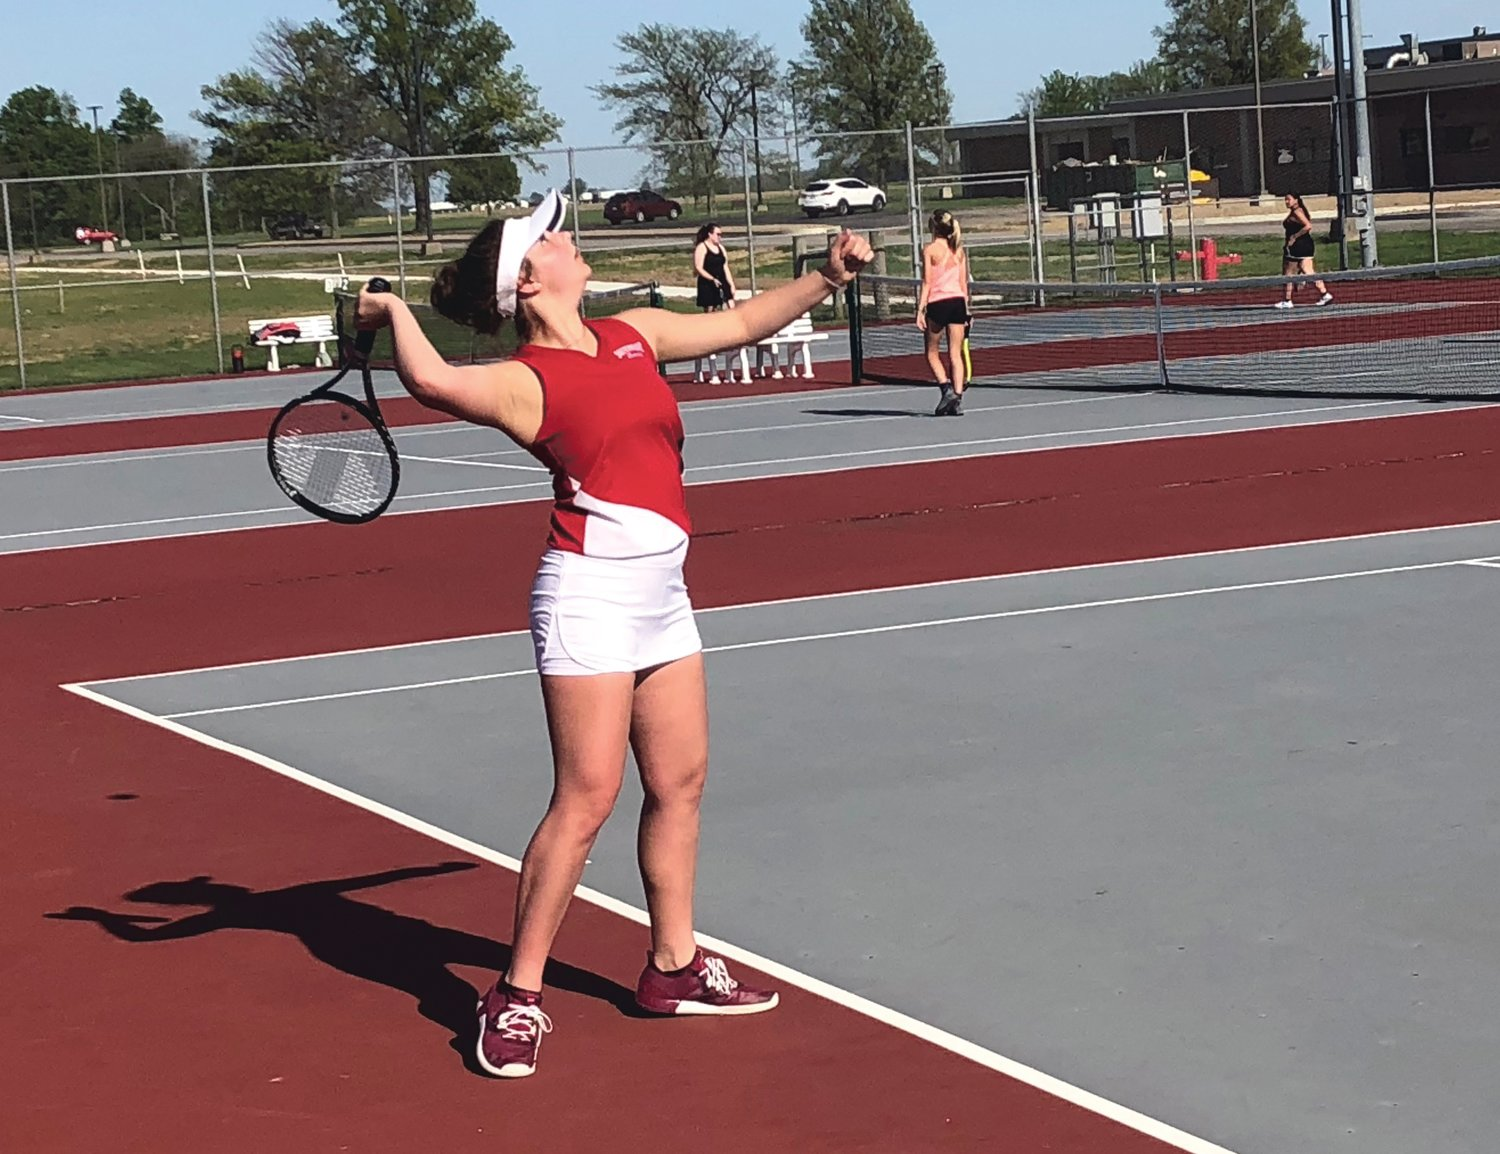 Southmont senior Sophie Reimondo and the Mounties' girls' tennis team are hoping they can compete for their first sectional title since 1996.